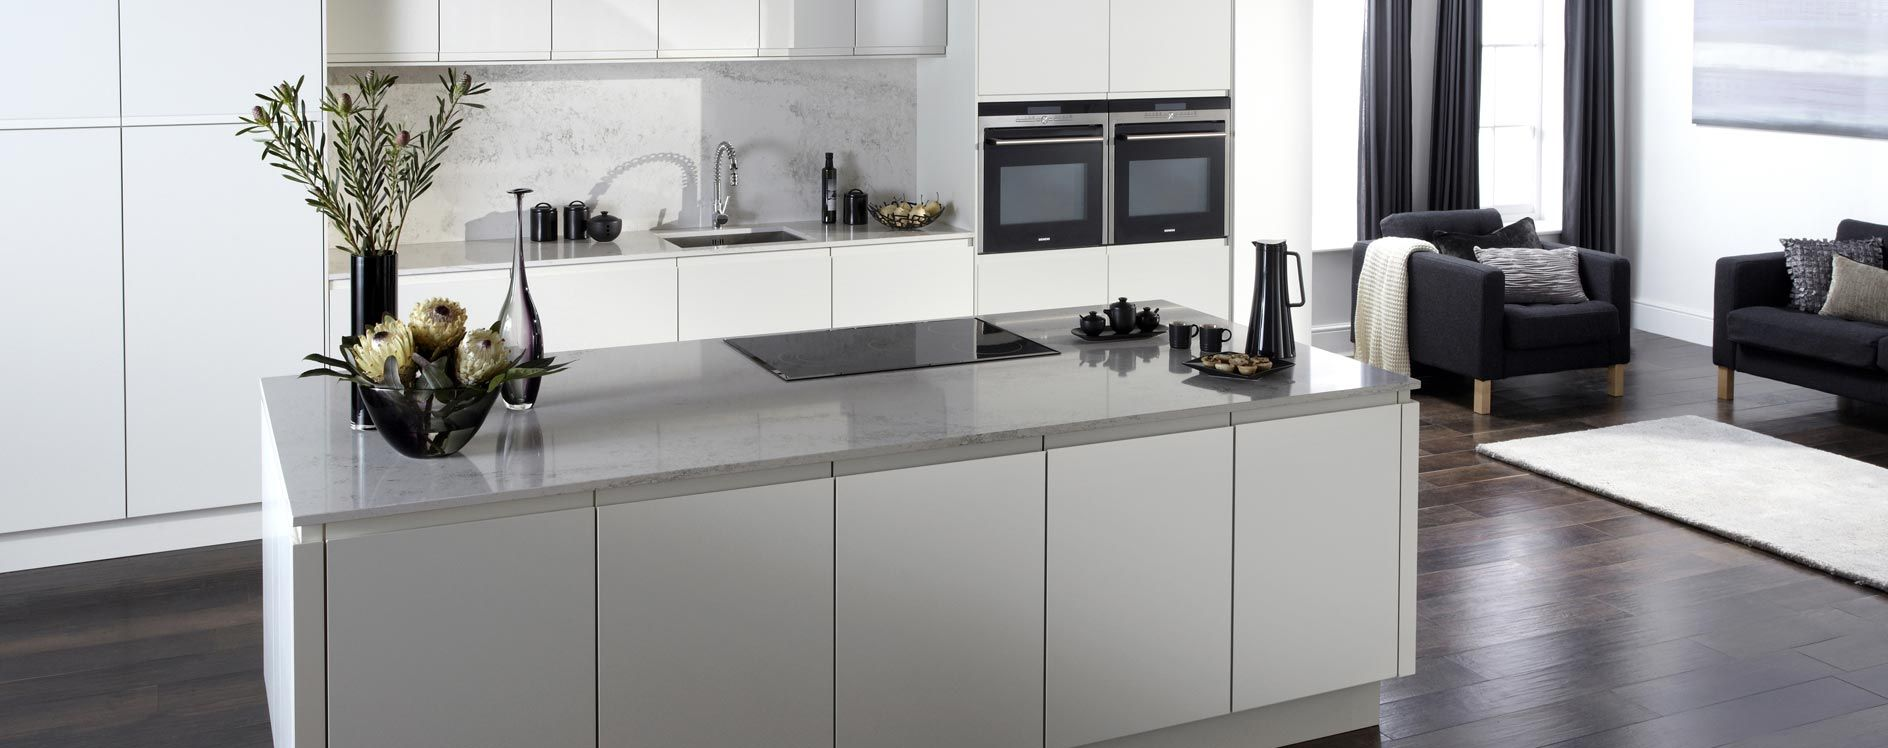 Malmo-Matt-Porcelain winchester kitchens islands